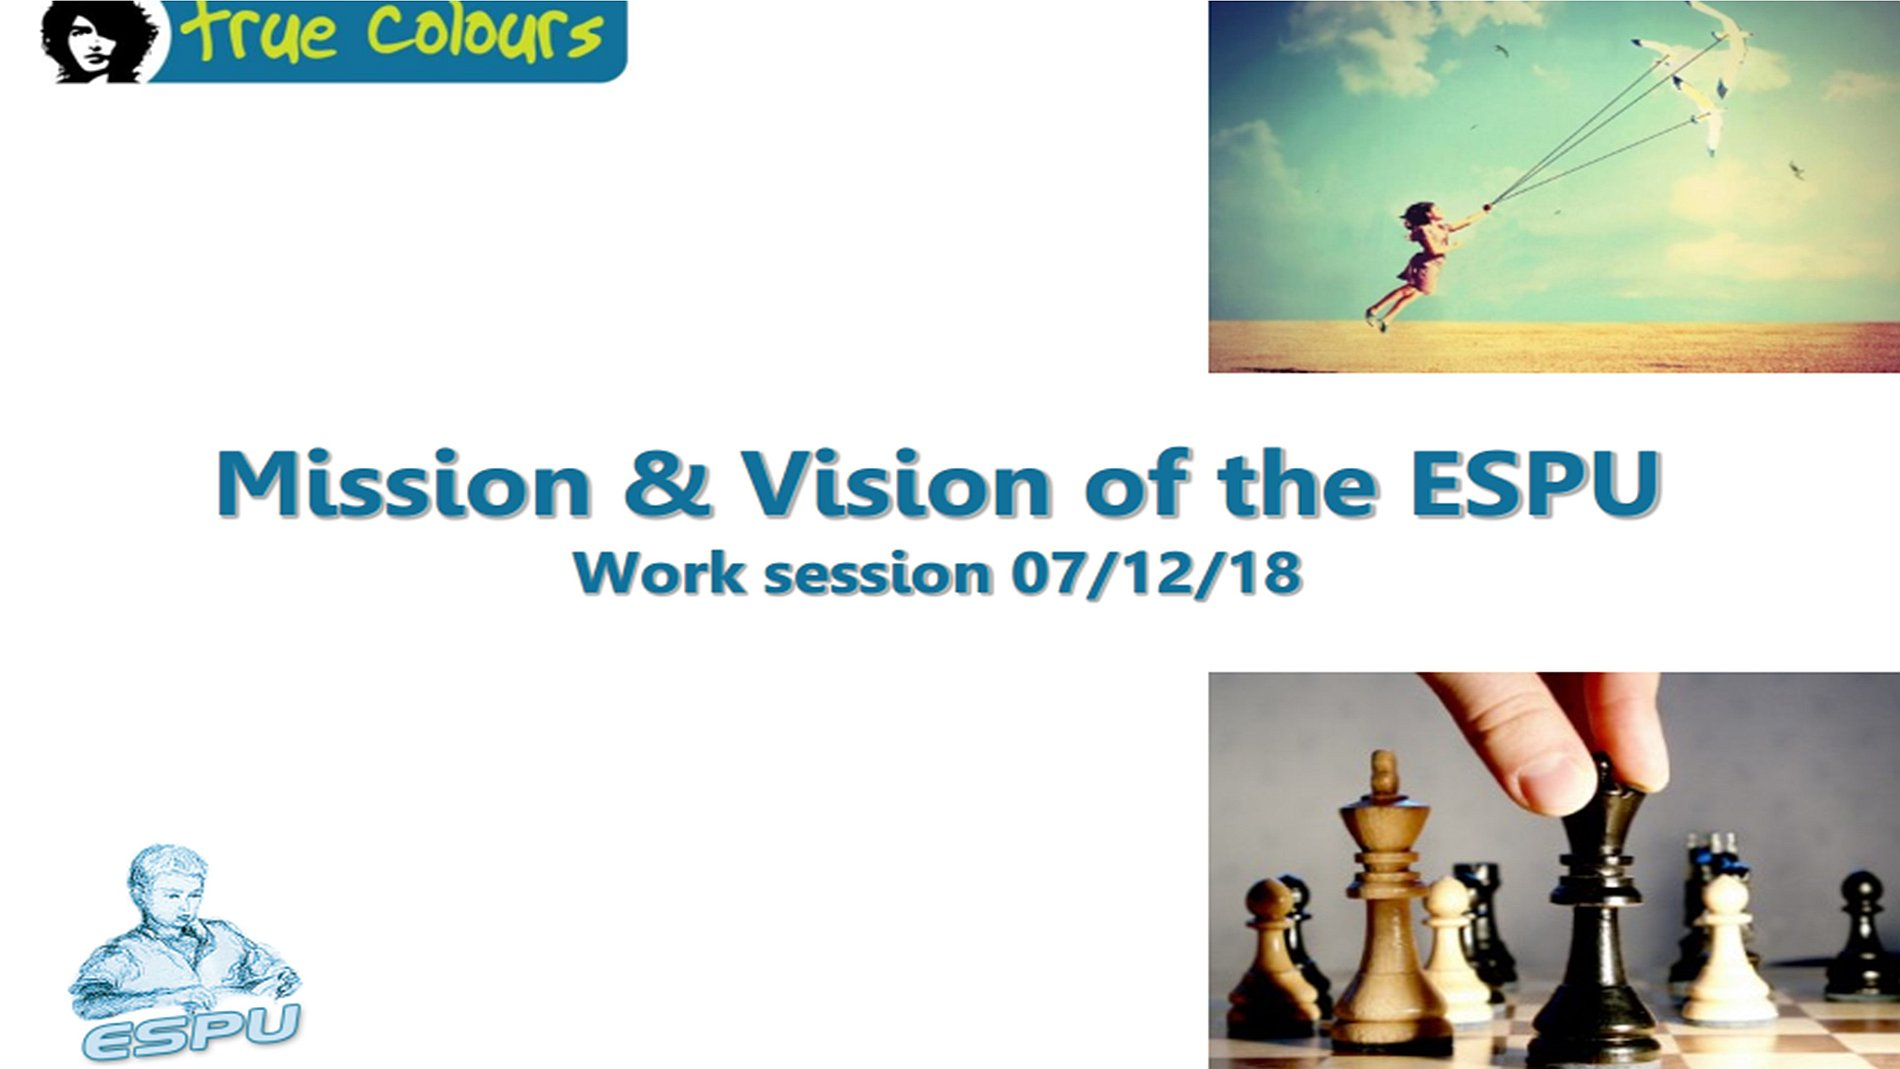 ESPU Mission and Vision